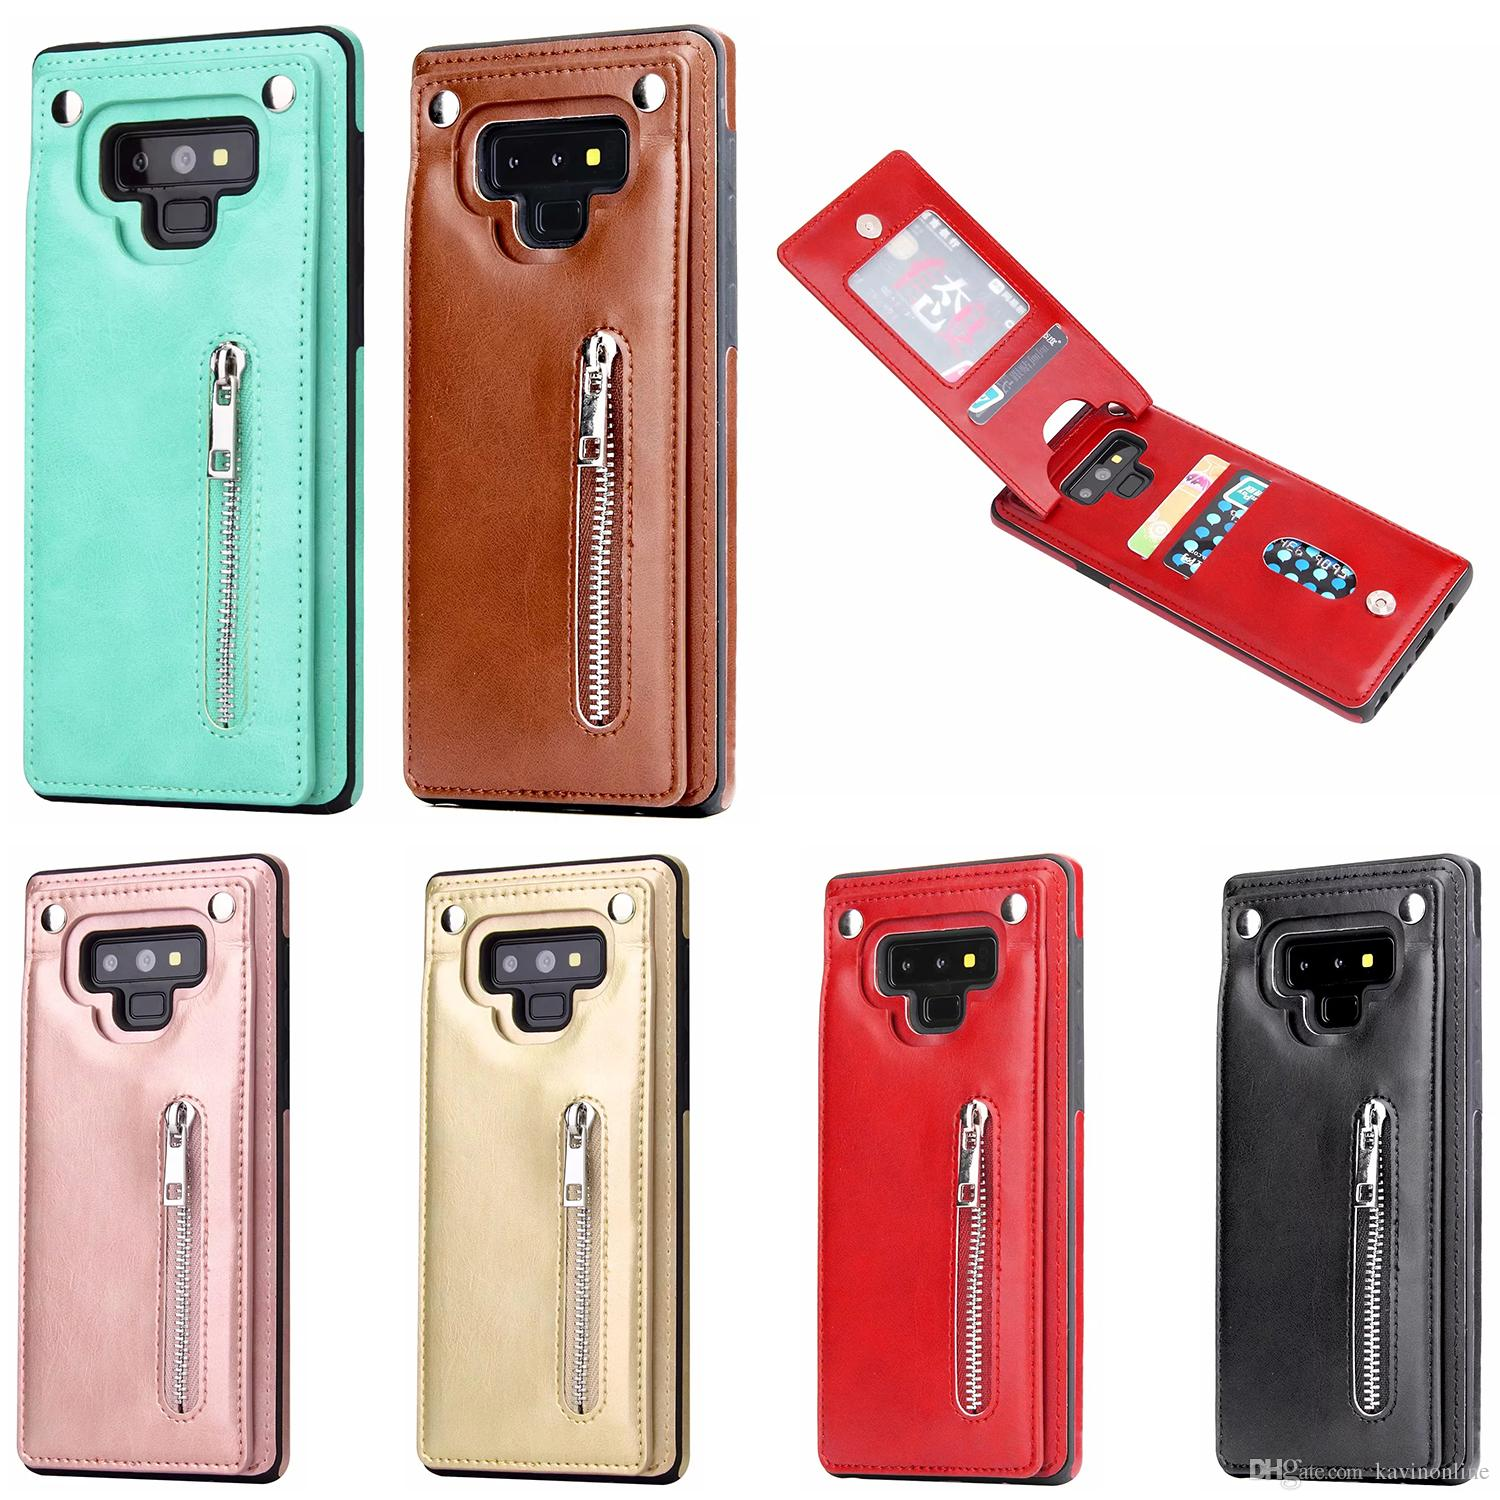 3 Cards Zipper Back Cover Phone Case For Samsung Galaxy Note 9 8 S8 S9 Plus And Iphone 8 Plus Etc Reiko Cell Phone Case Western Cell Phone Cases From